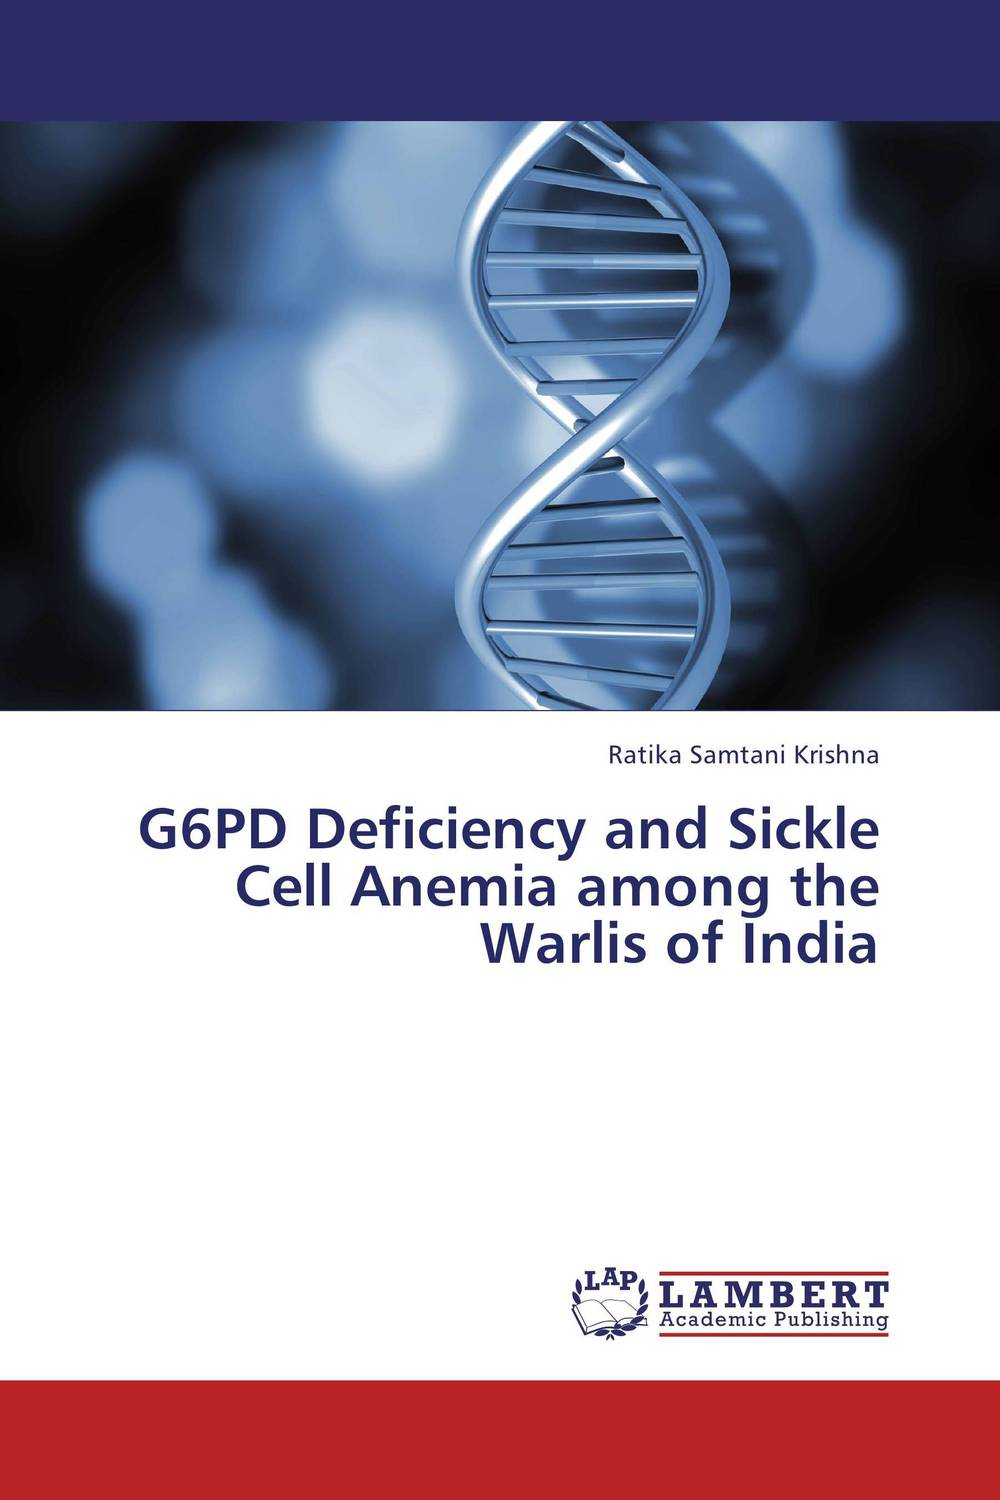 G6PD Deficiency and Sickle Cell Anemia among the Warlis of India incidence of iron deficiency anemia in day scholar university girls